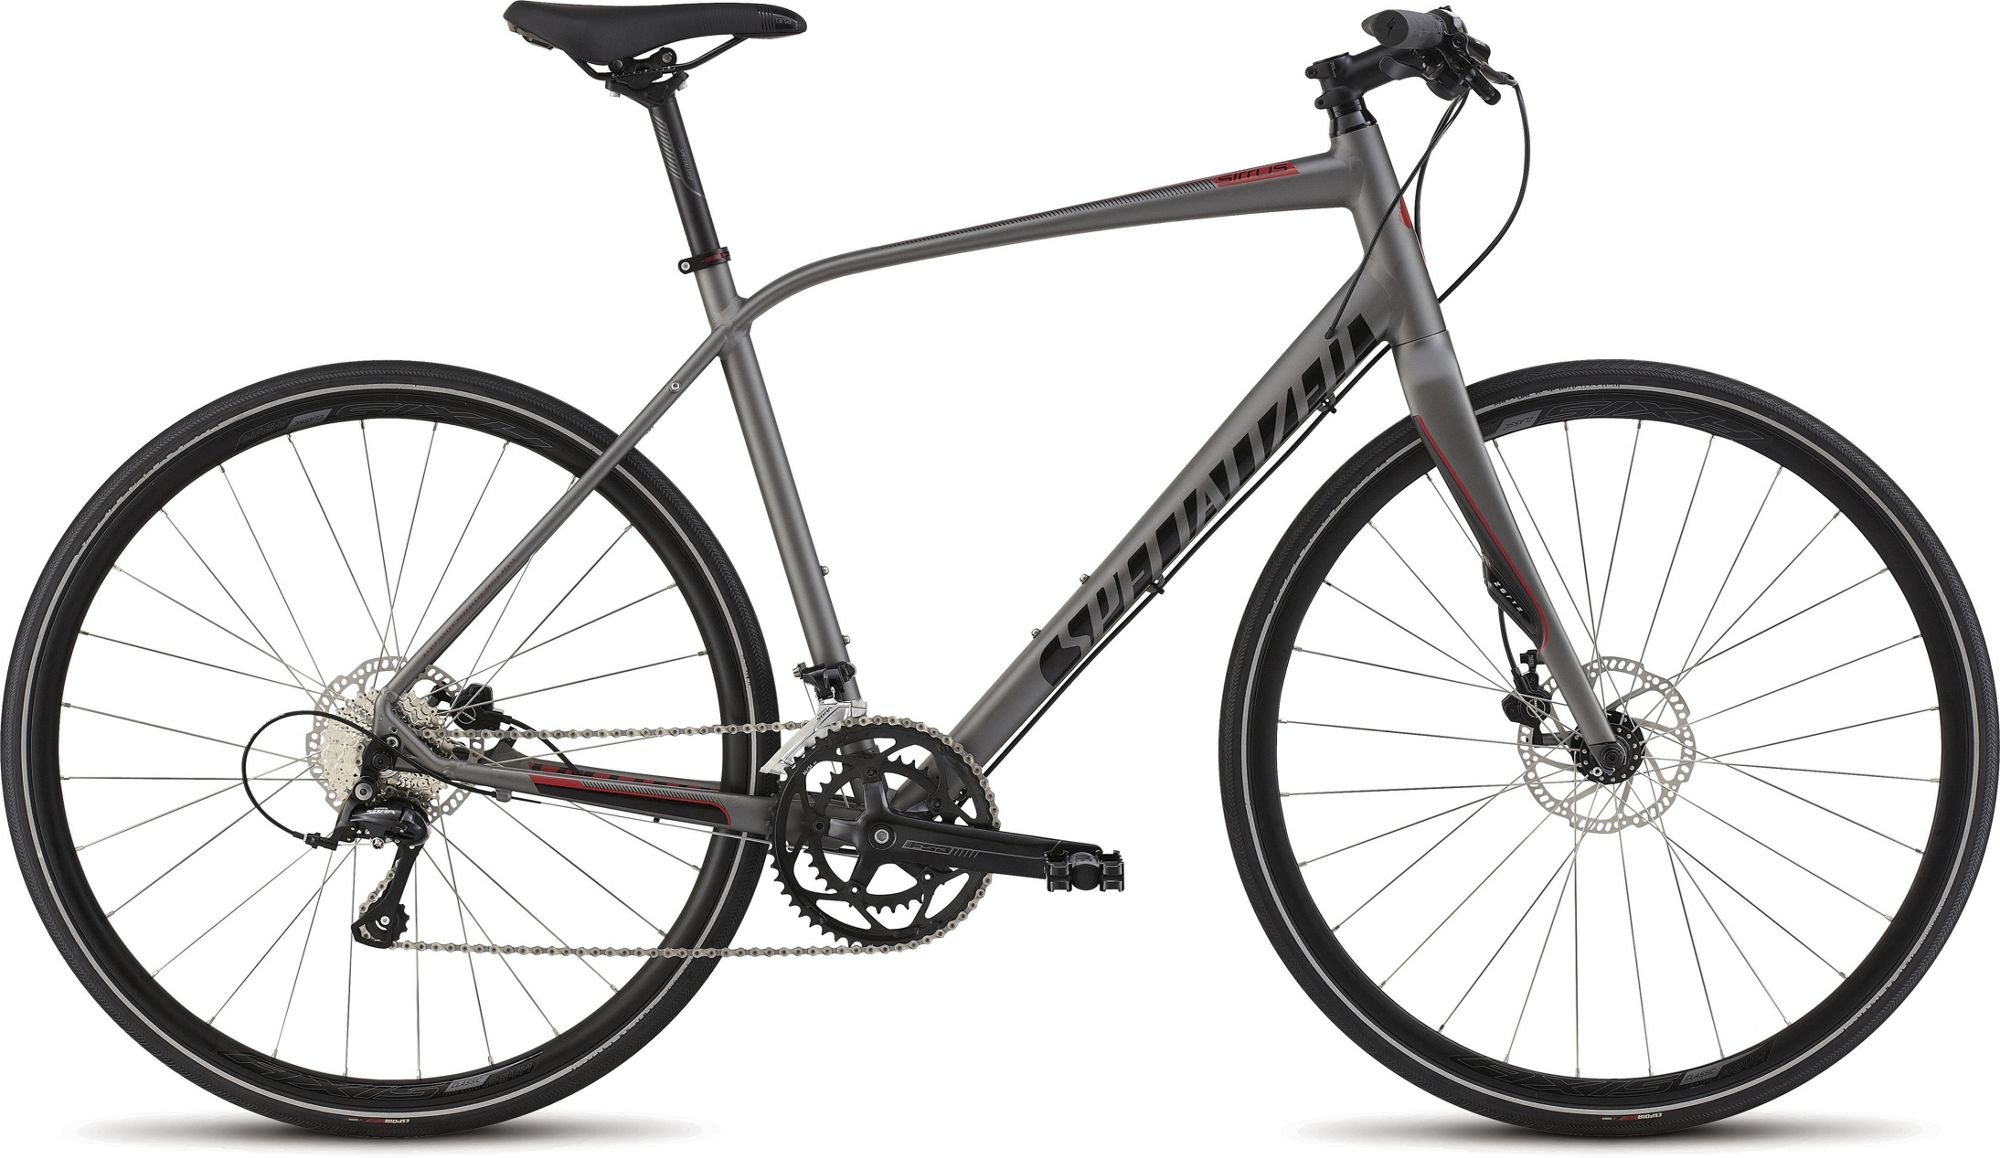 Specialized SIRRUS ELITE DISC 2015 review - The Bike List